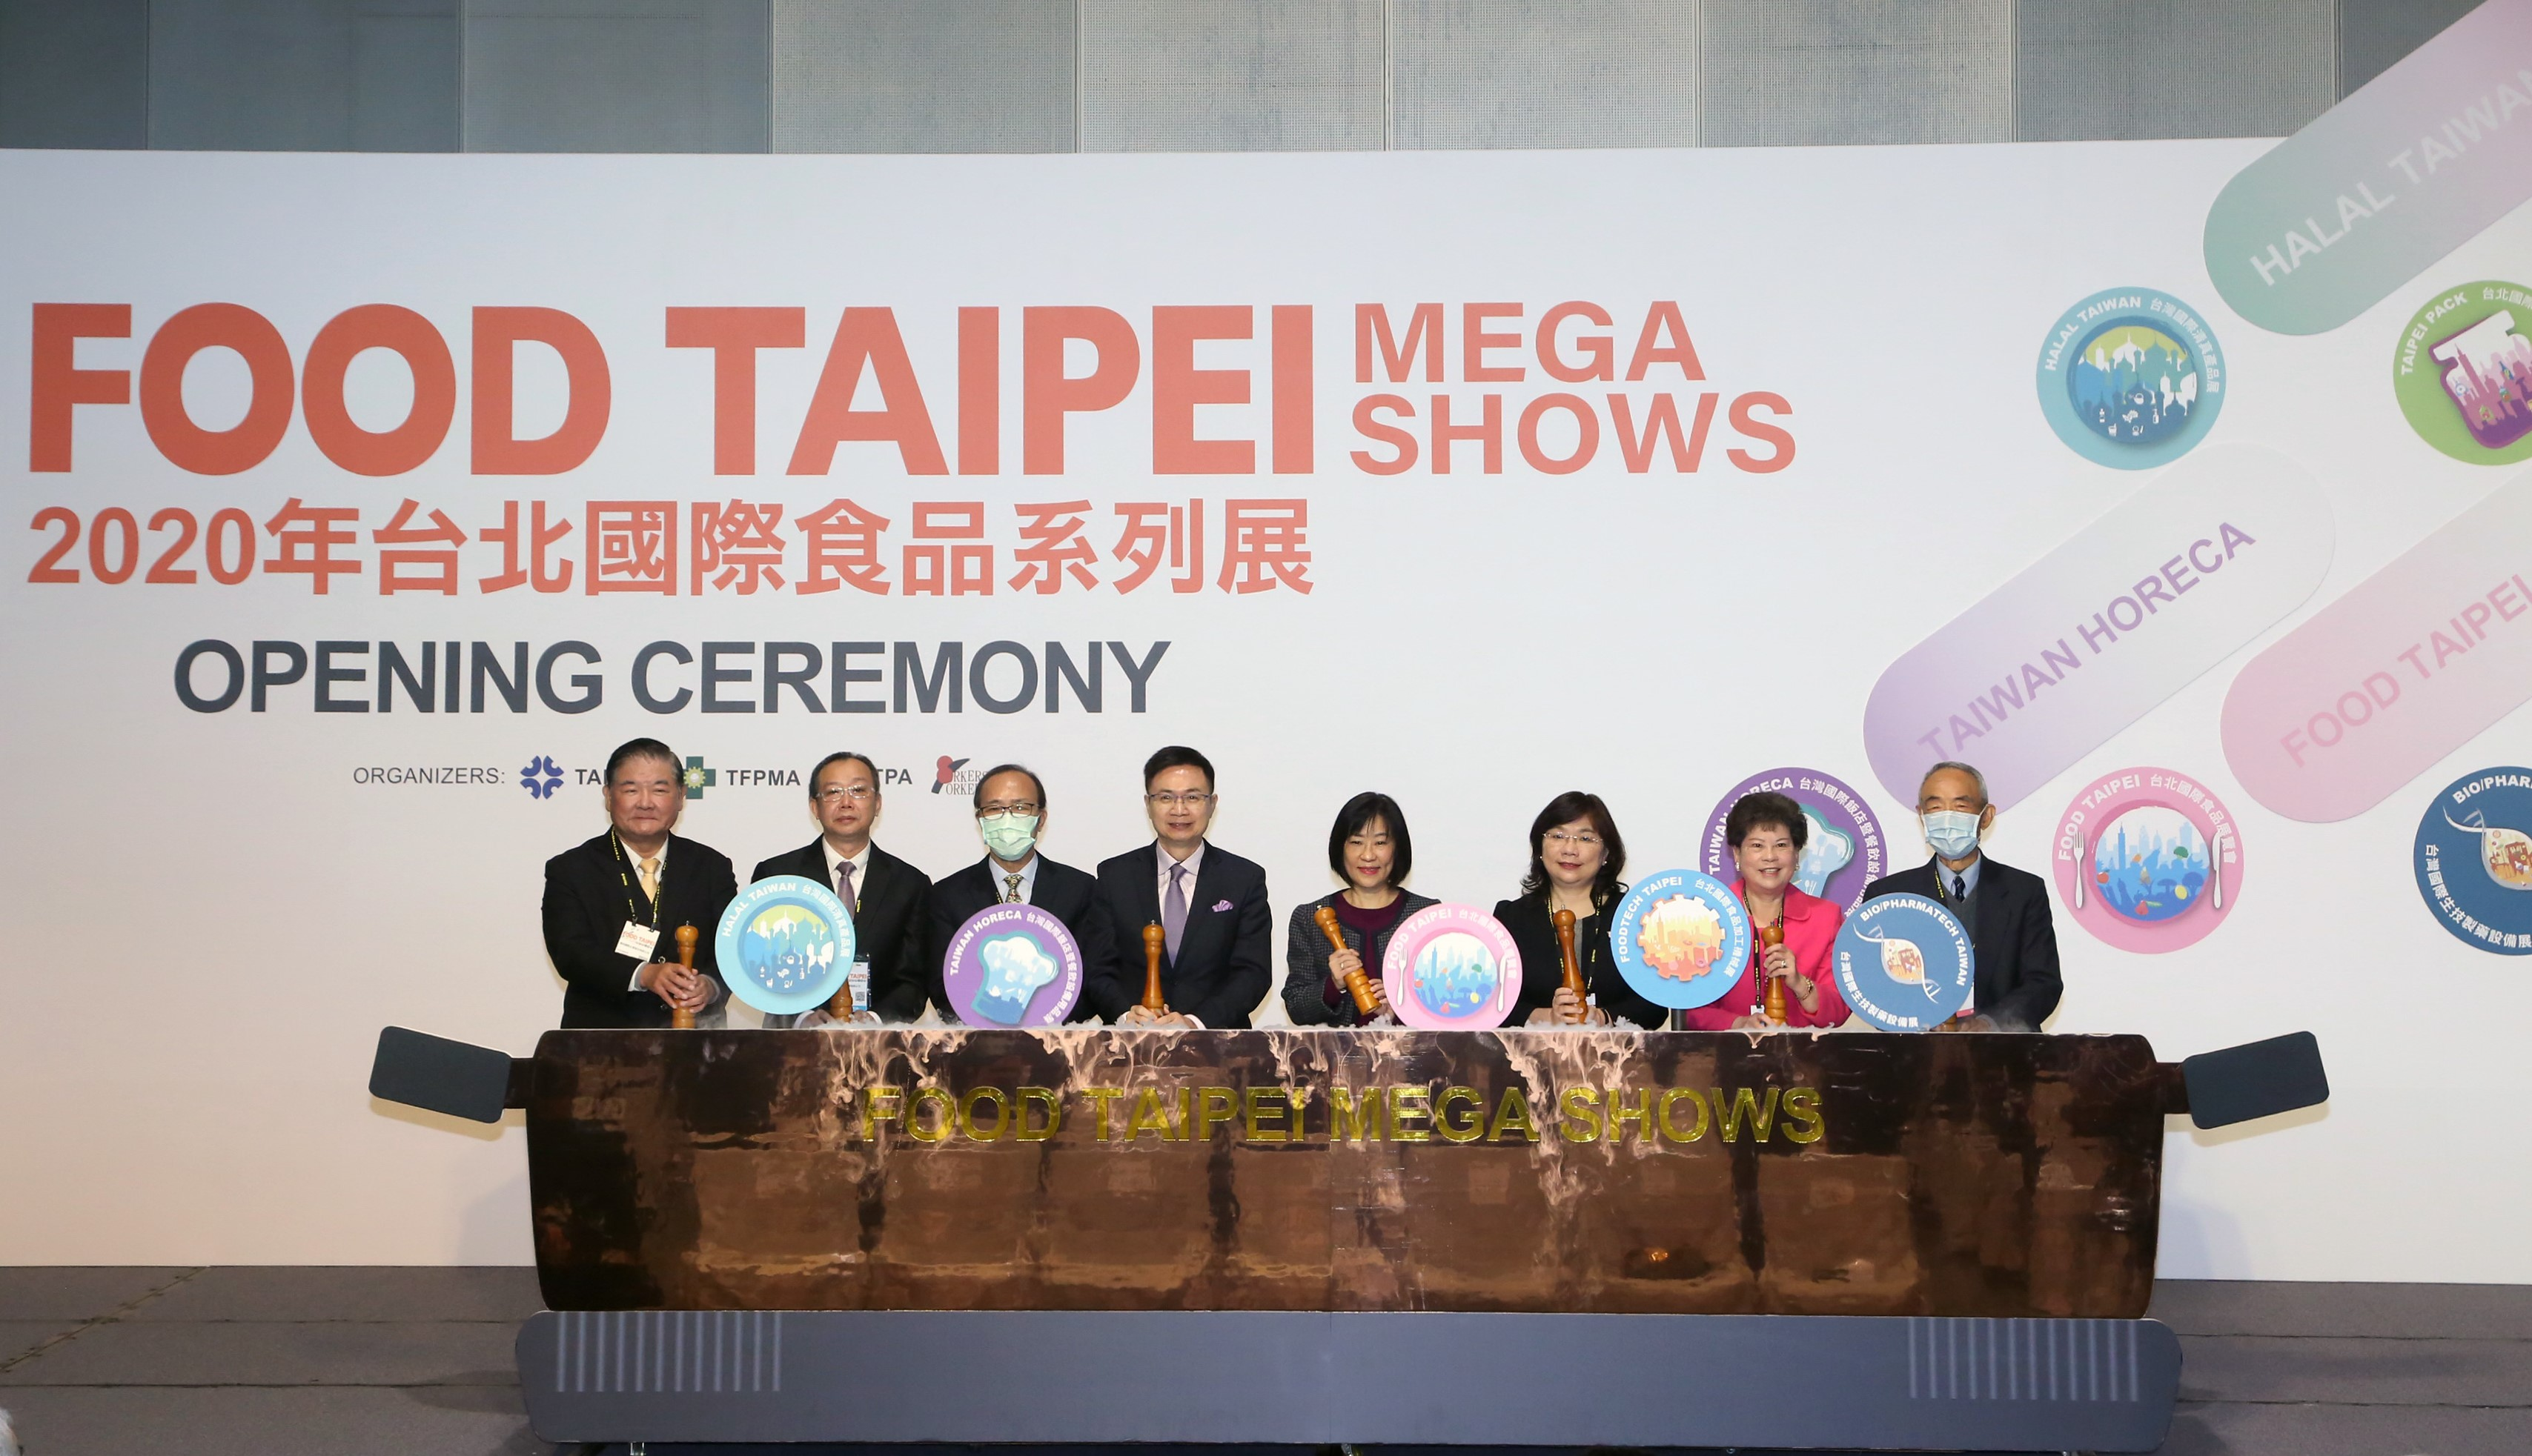 The 2020 Food Taipei Mega Shows